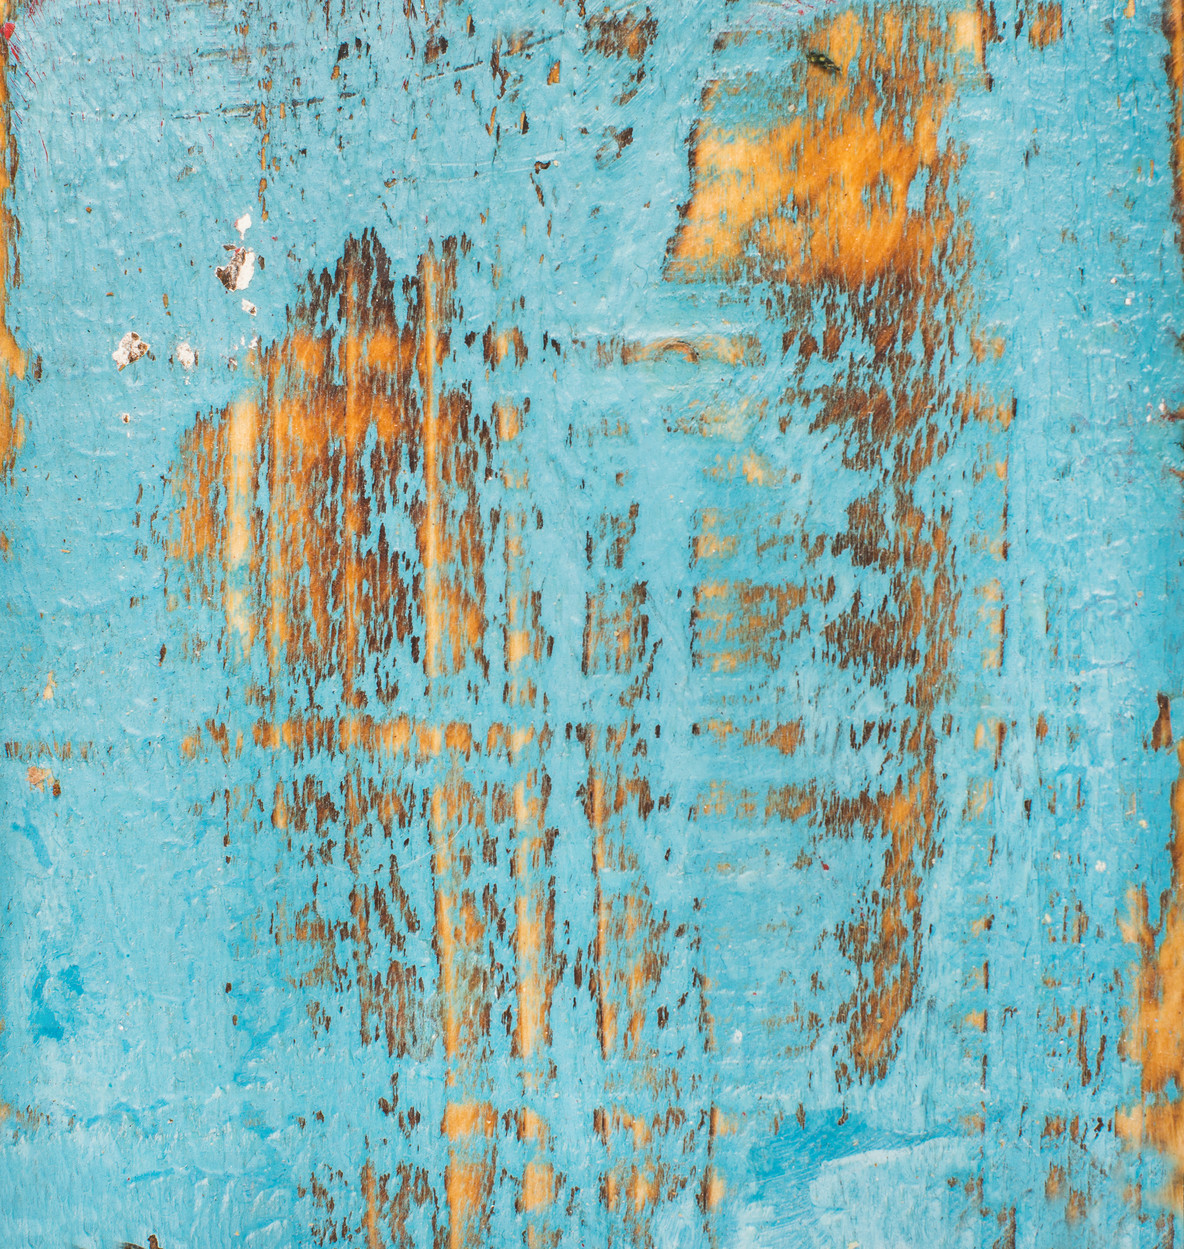 Blue painted old rustic shabby wood texture